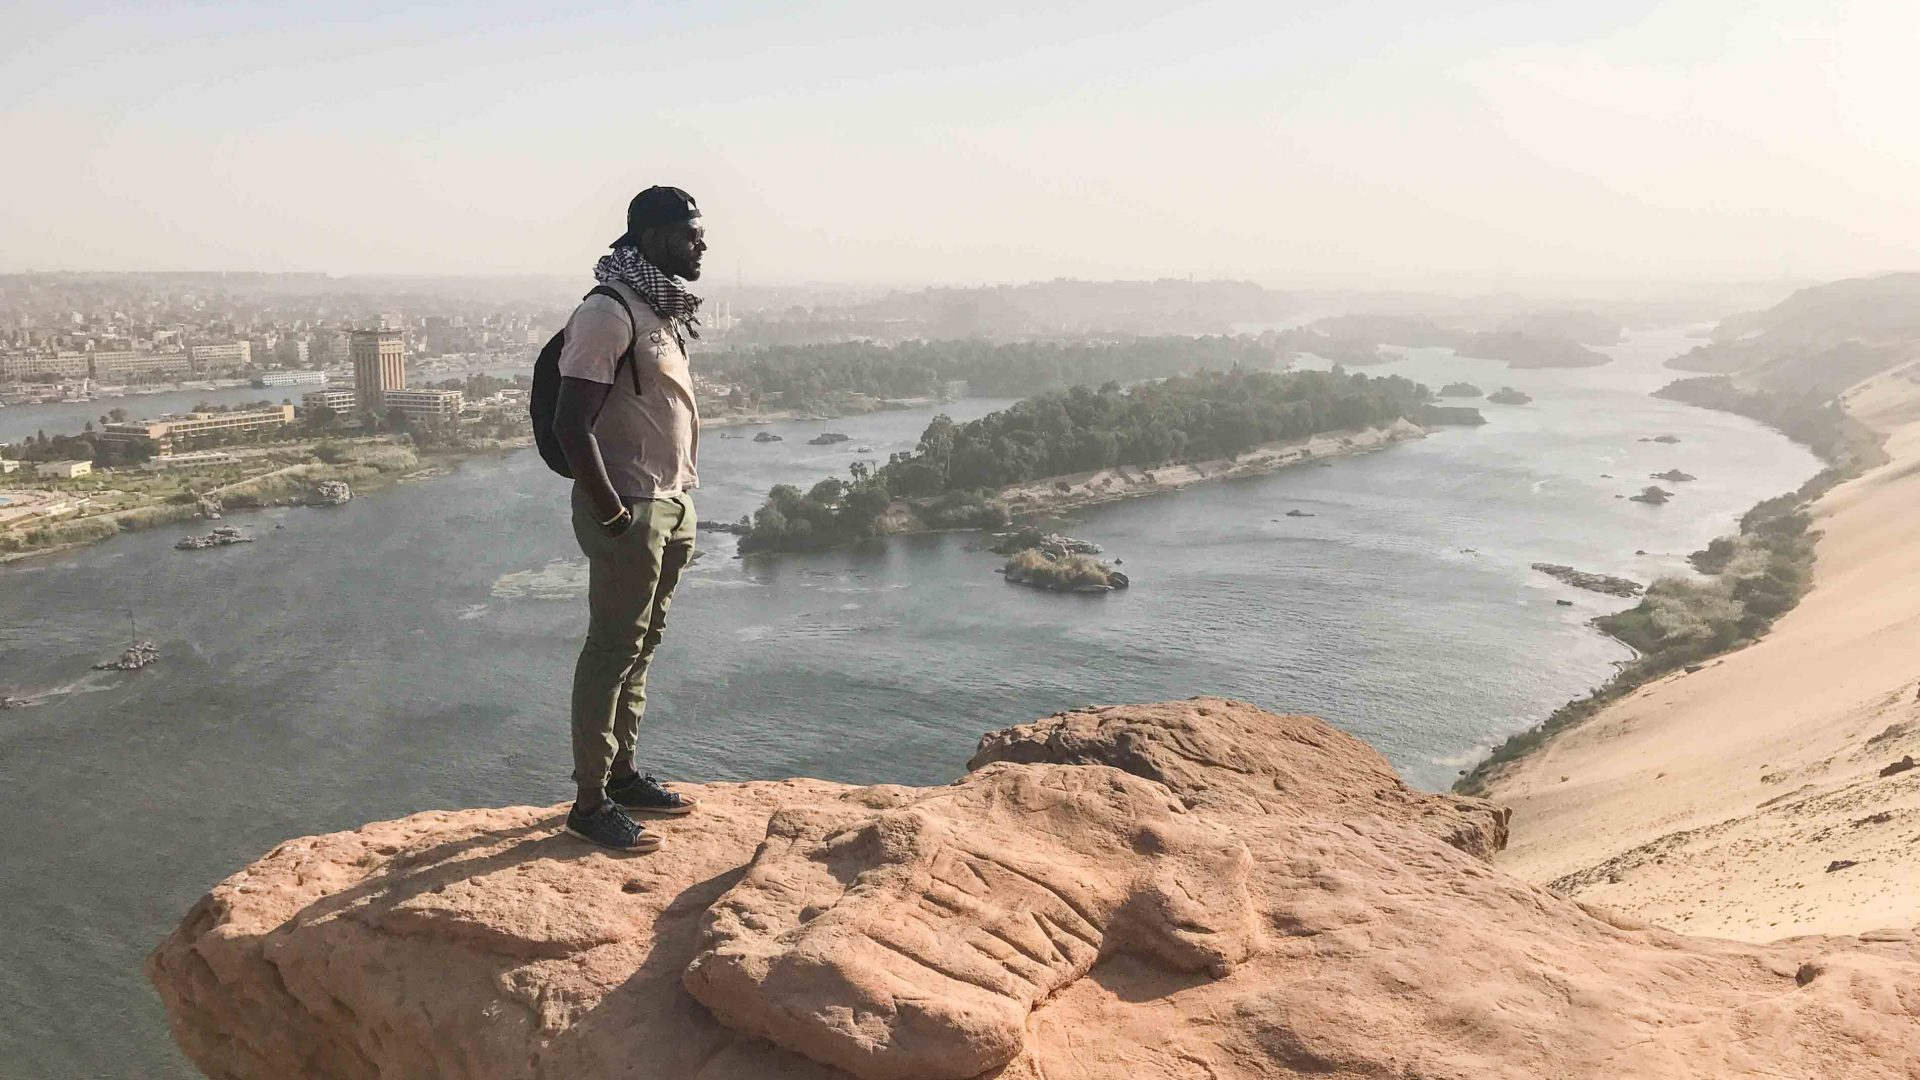 Mario Rigby on a hilltop overlooking the city of Aswan, Egypt.